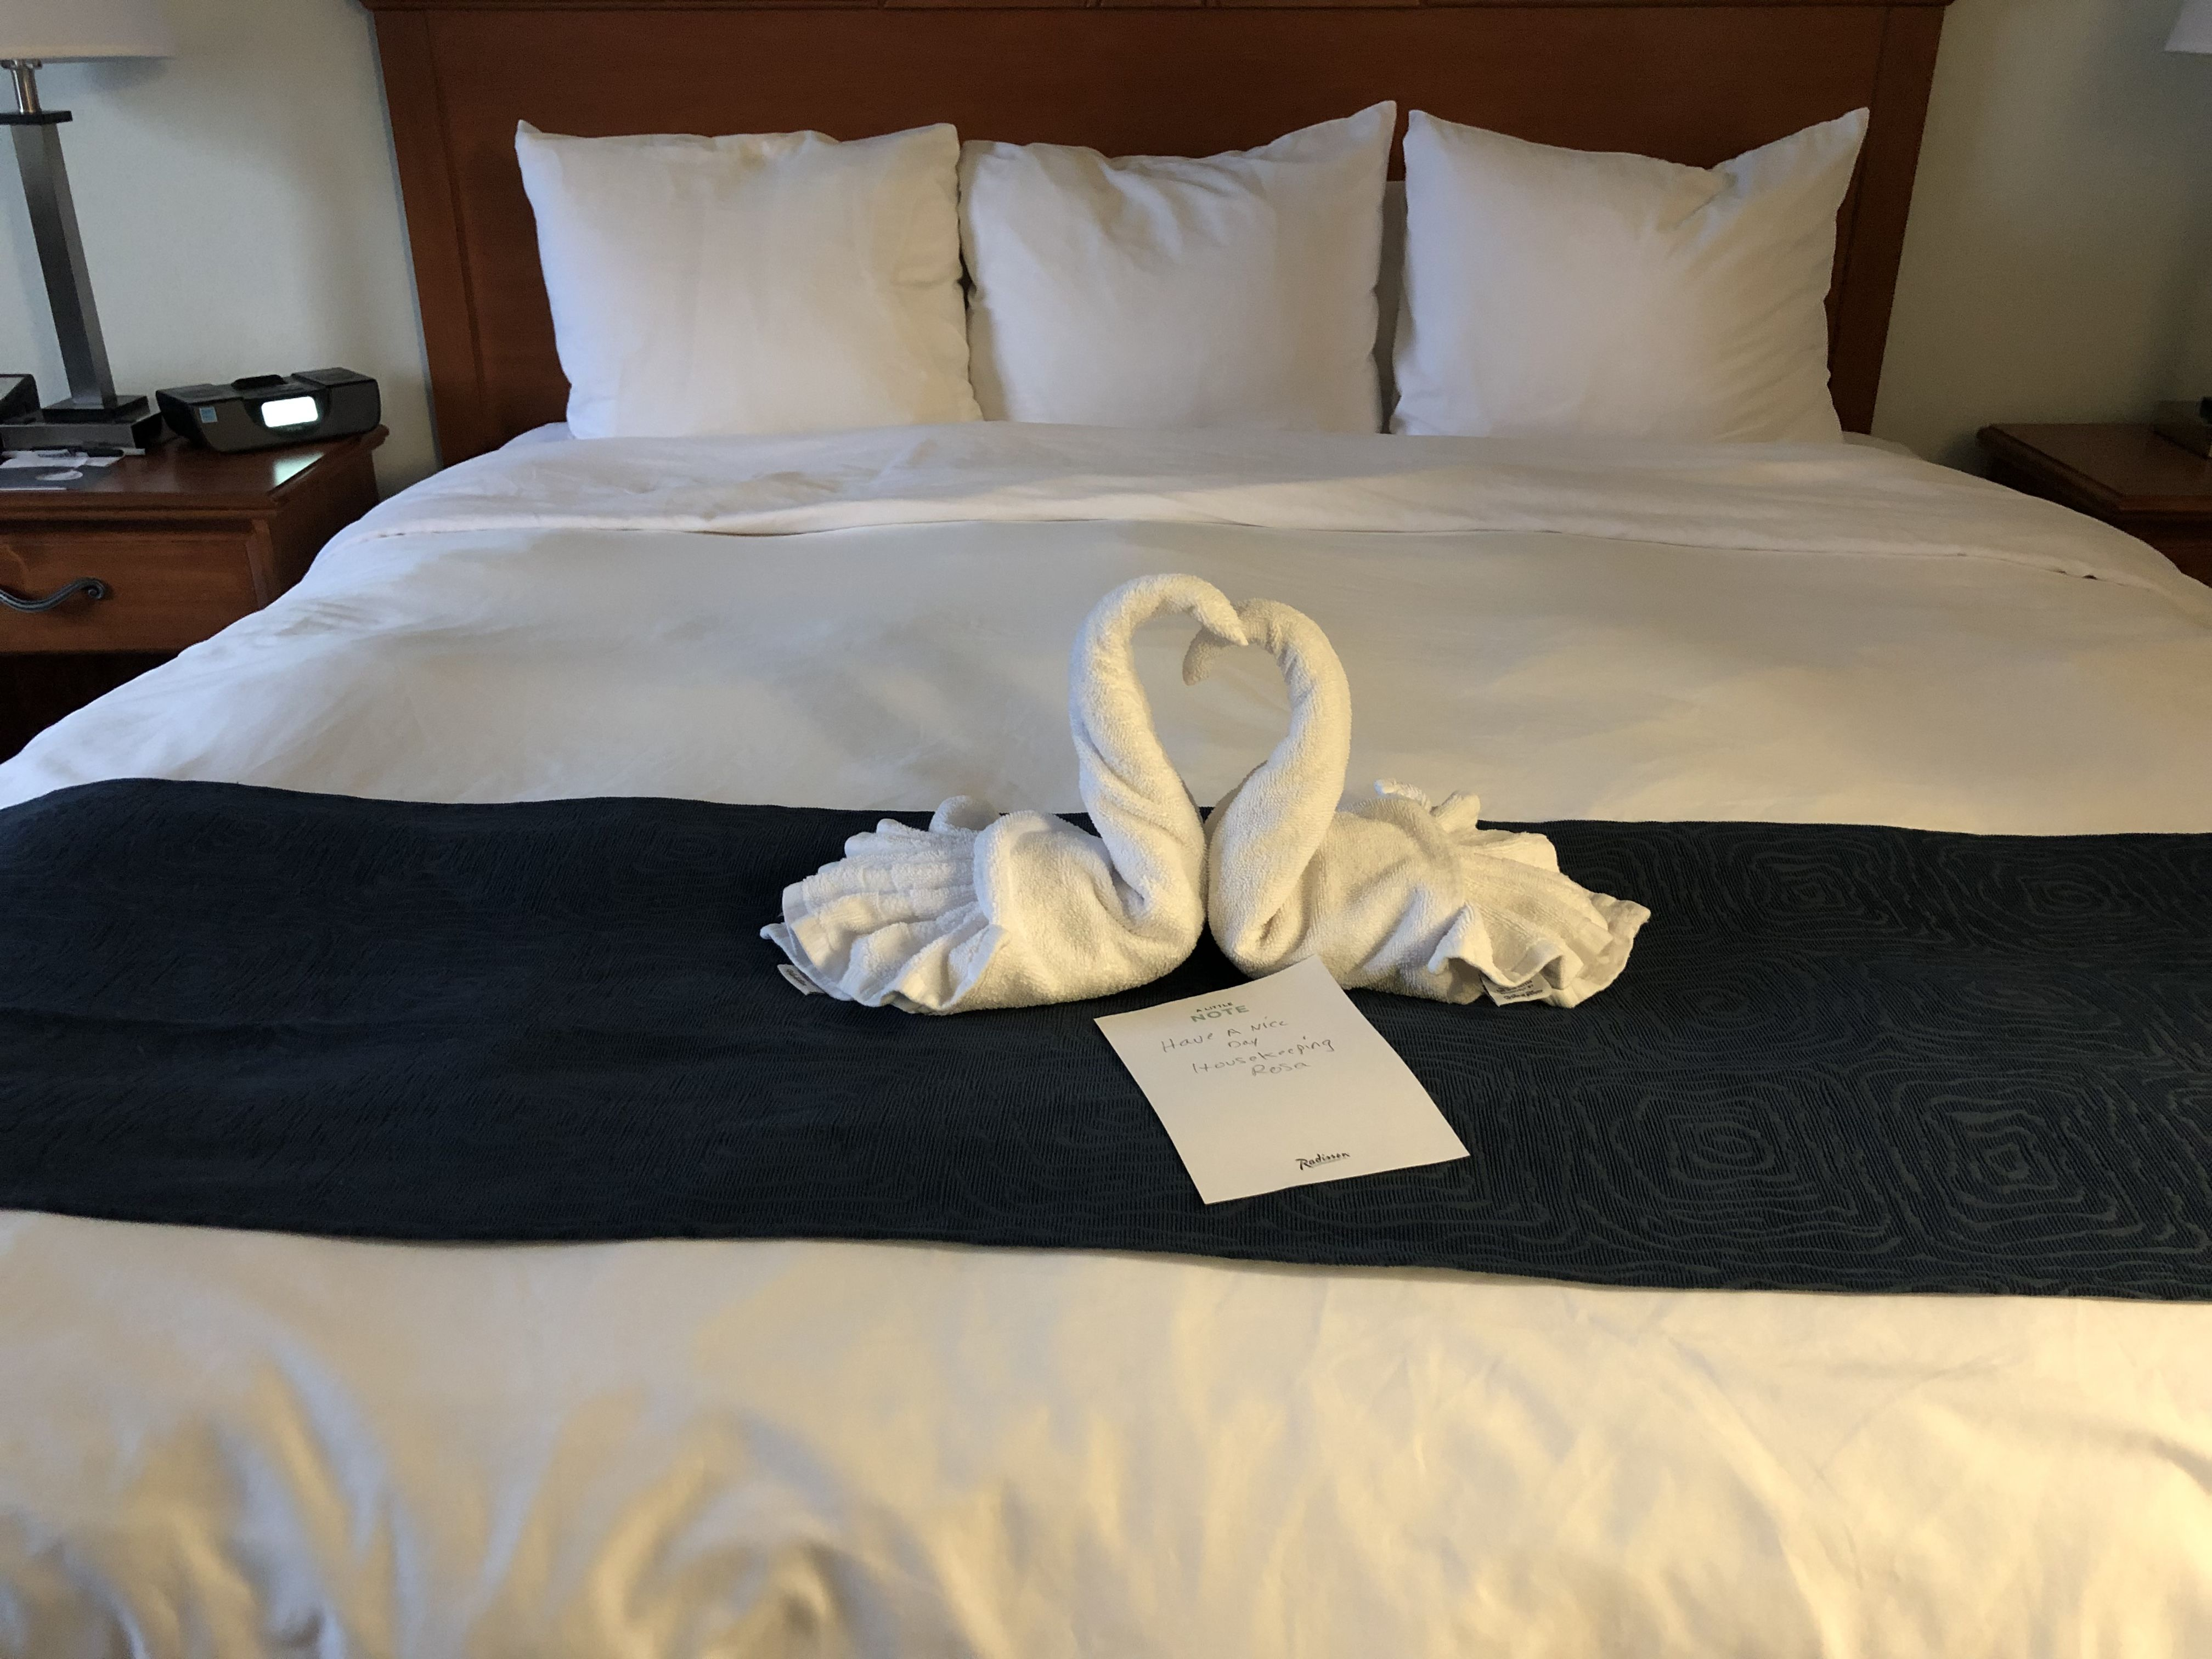 Bed at the Radisson Hotel Branson